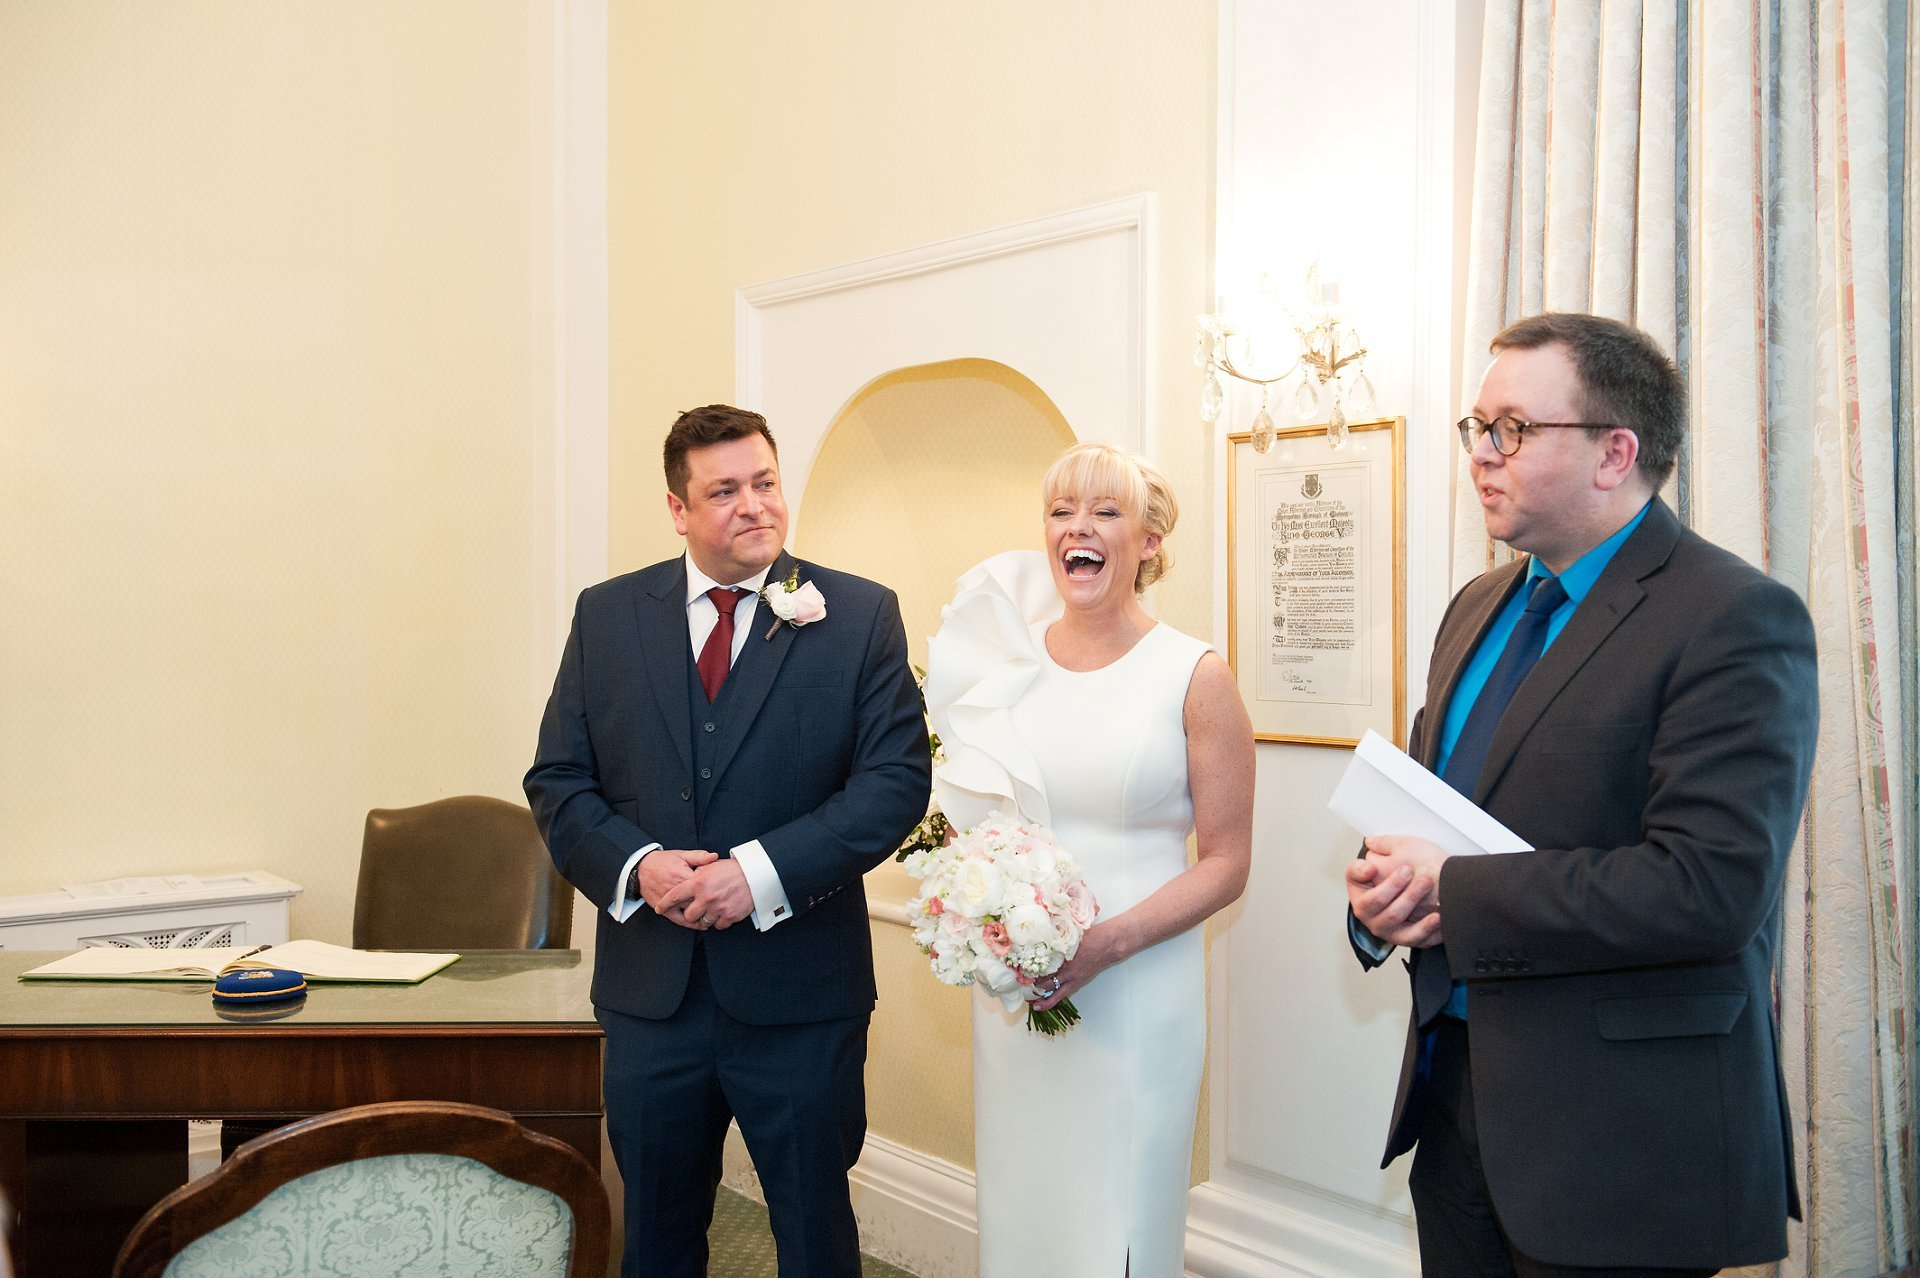 Bride & Groom laughing as Kensington & Chelsea Registrar Damian hands over their marriage license